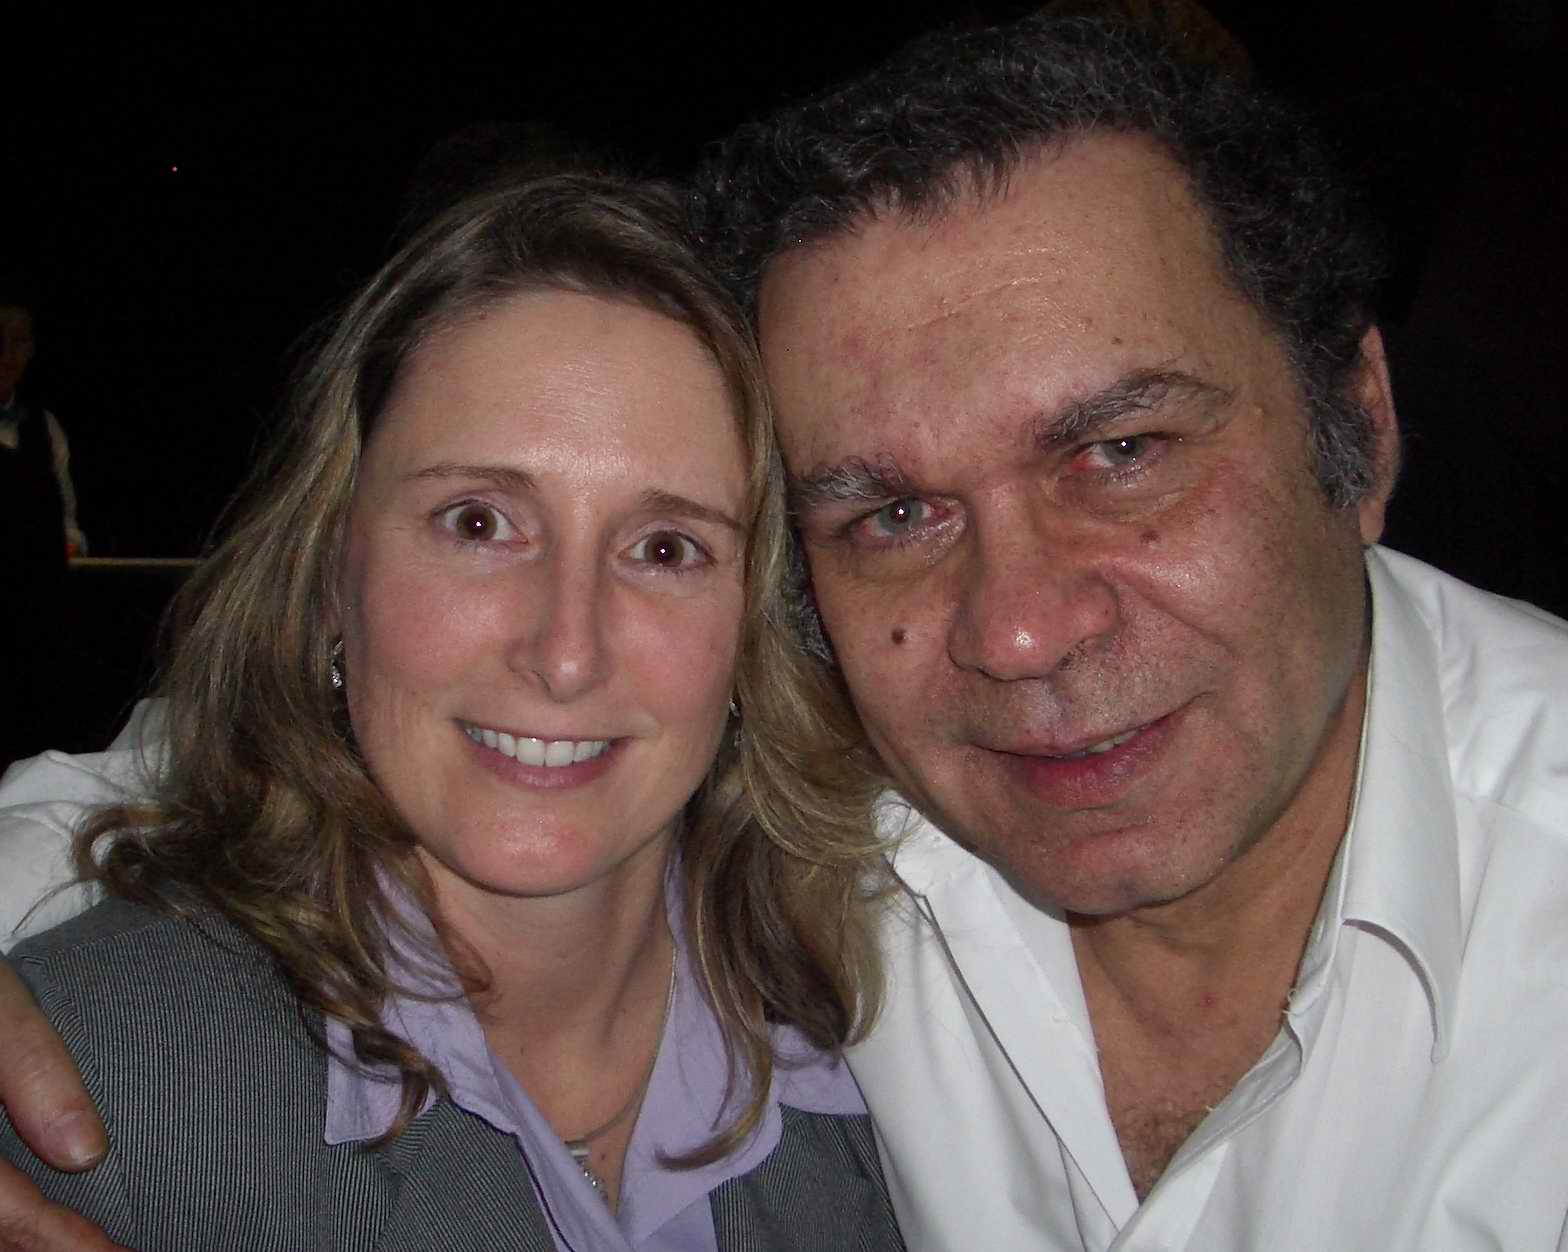 Dr Lisa Lang and Dr Eilyahu M Goldratt